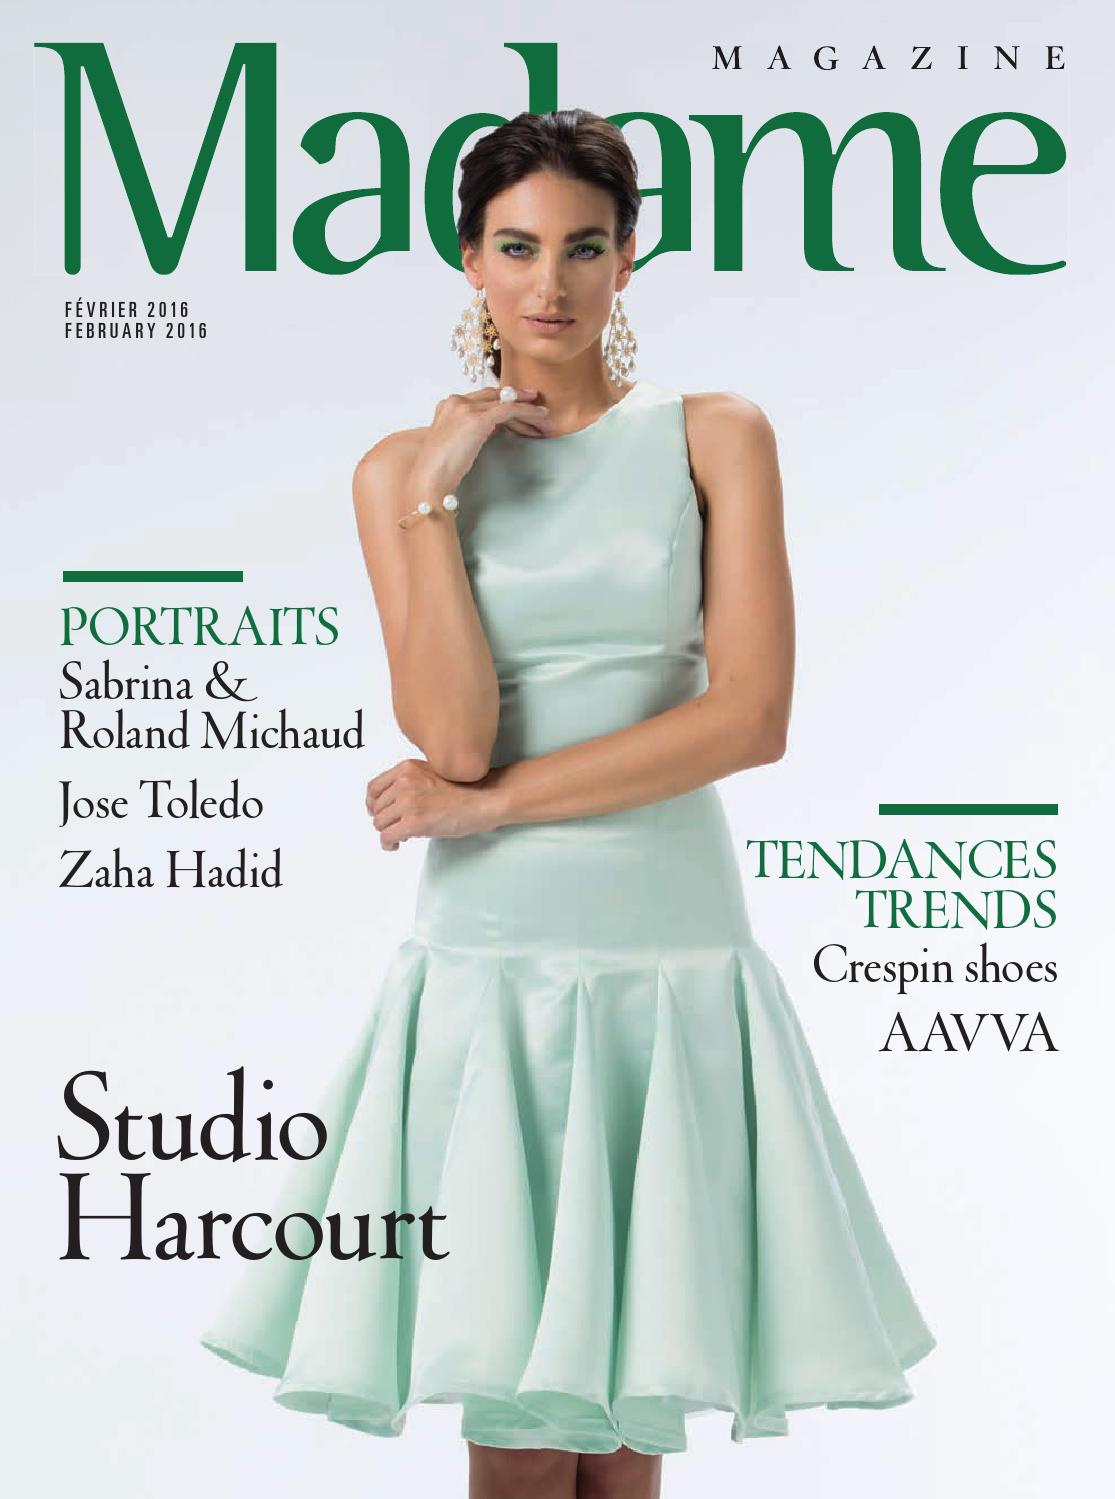 madame february 2016 by catherine gilbert - issuu dea9a77f1fbc